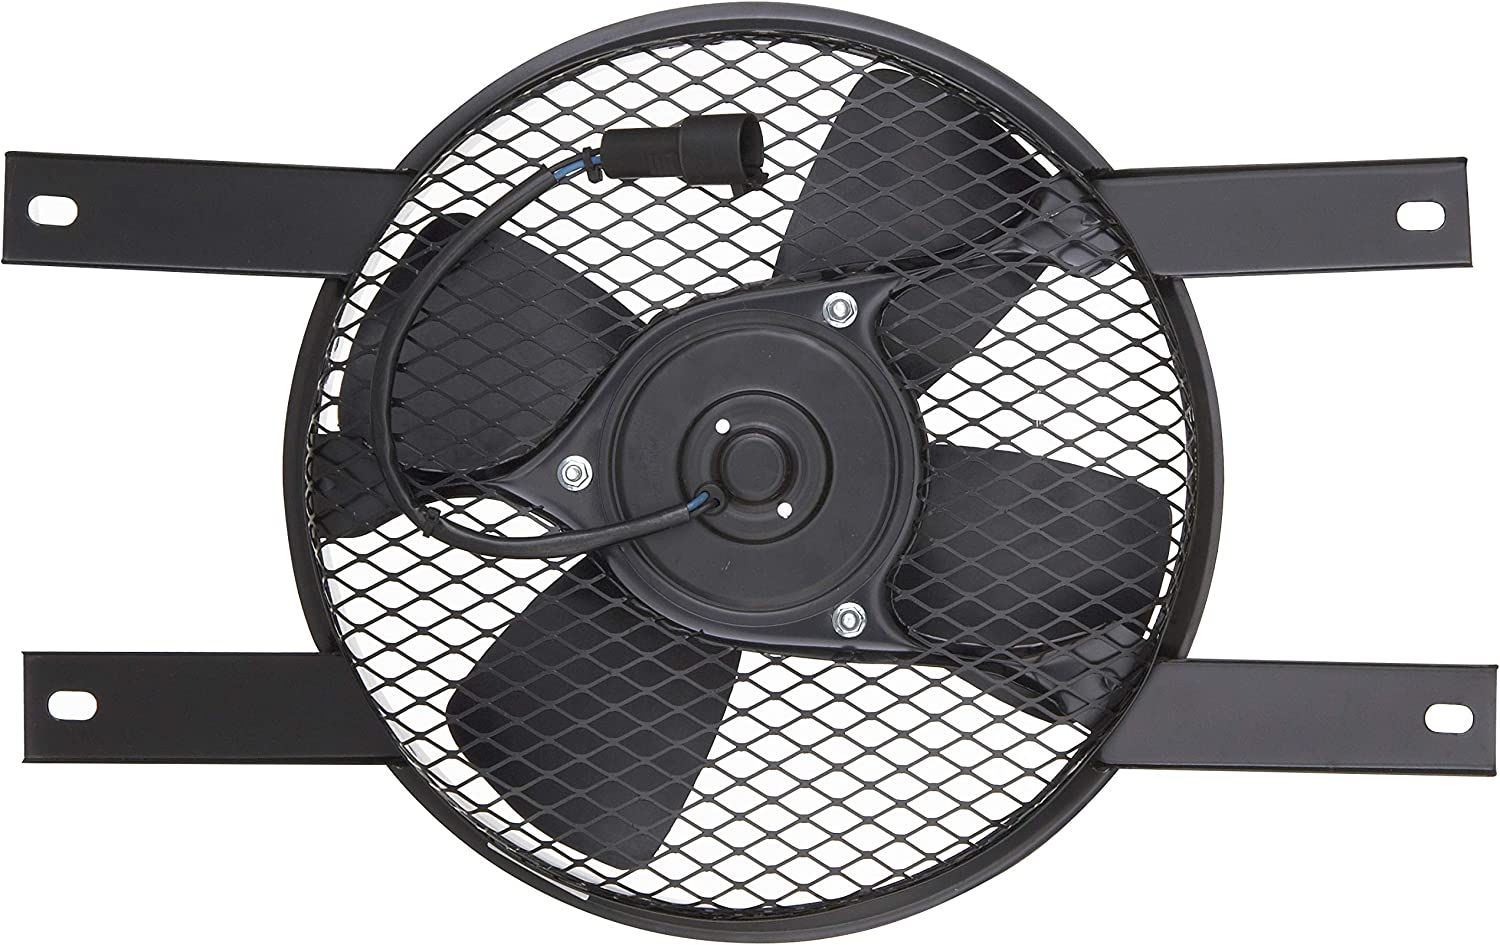 Bombing free shipping Ranking TOP12 Spectra Premium CF27003 Air Assembly Conditioning Fan Condenser